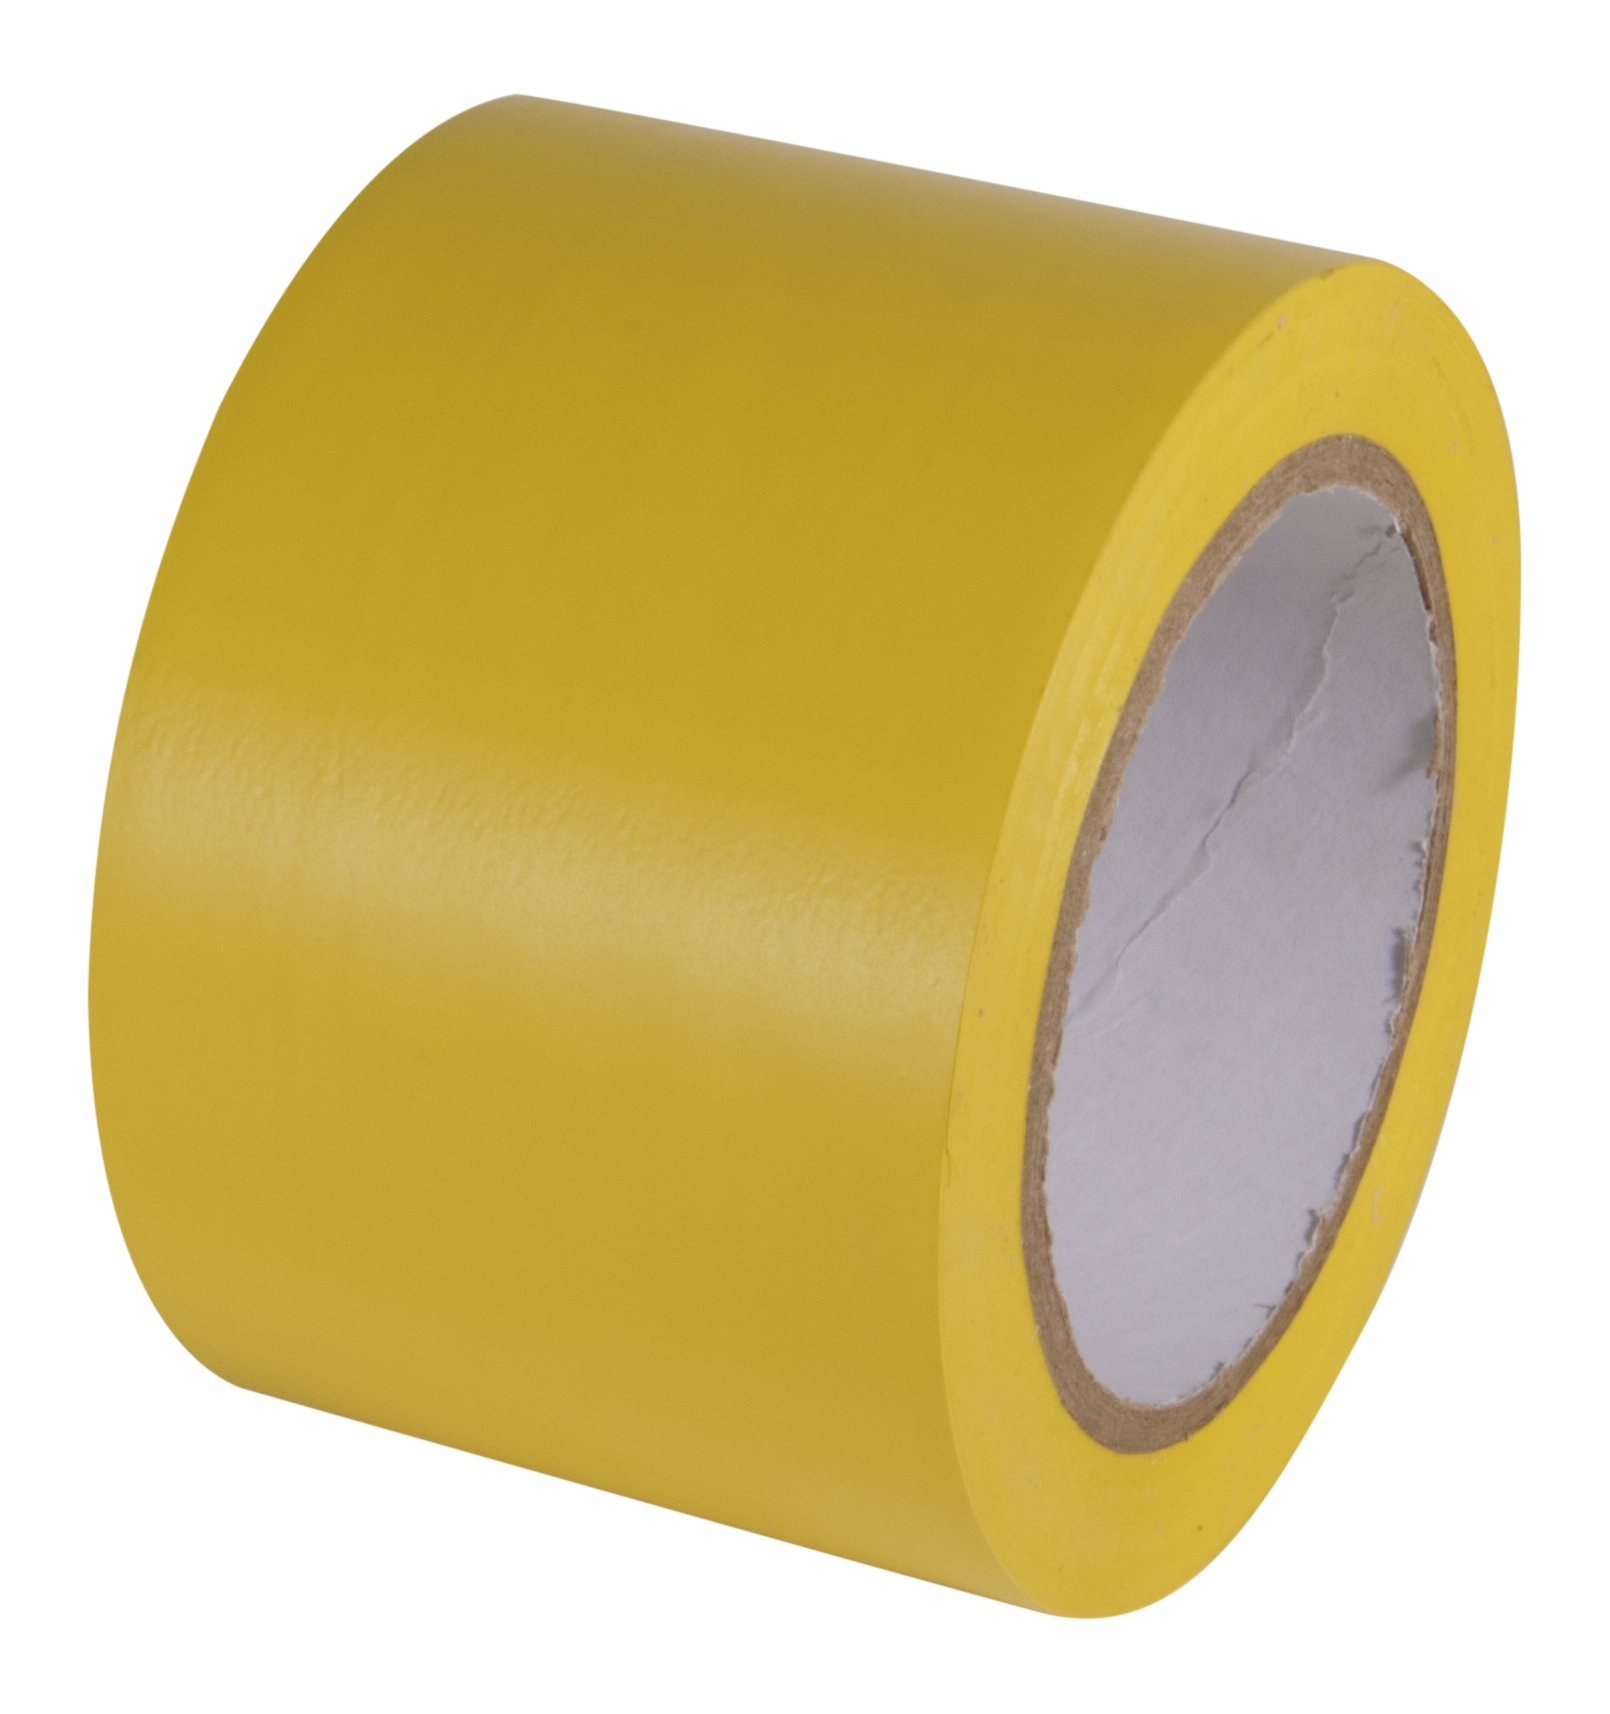 INCOM Manufacturing: Vinyl Aisle Marking Conformable Tape, 3'' x 108', Safety Yellow- Ideal for Walls, Floors, Equipment